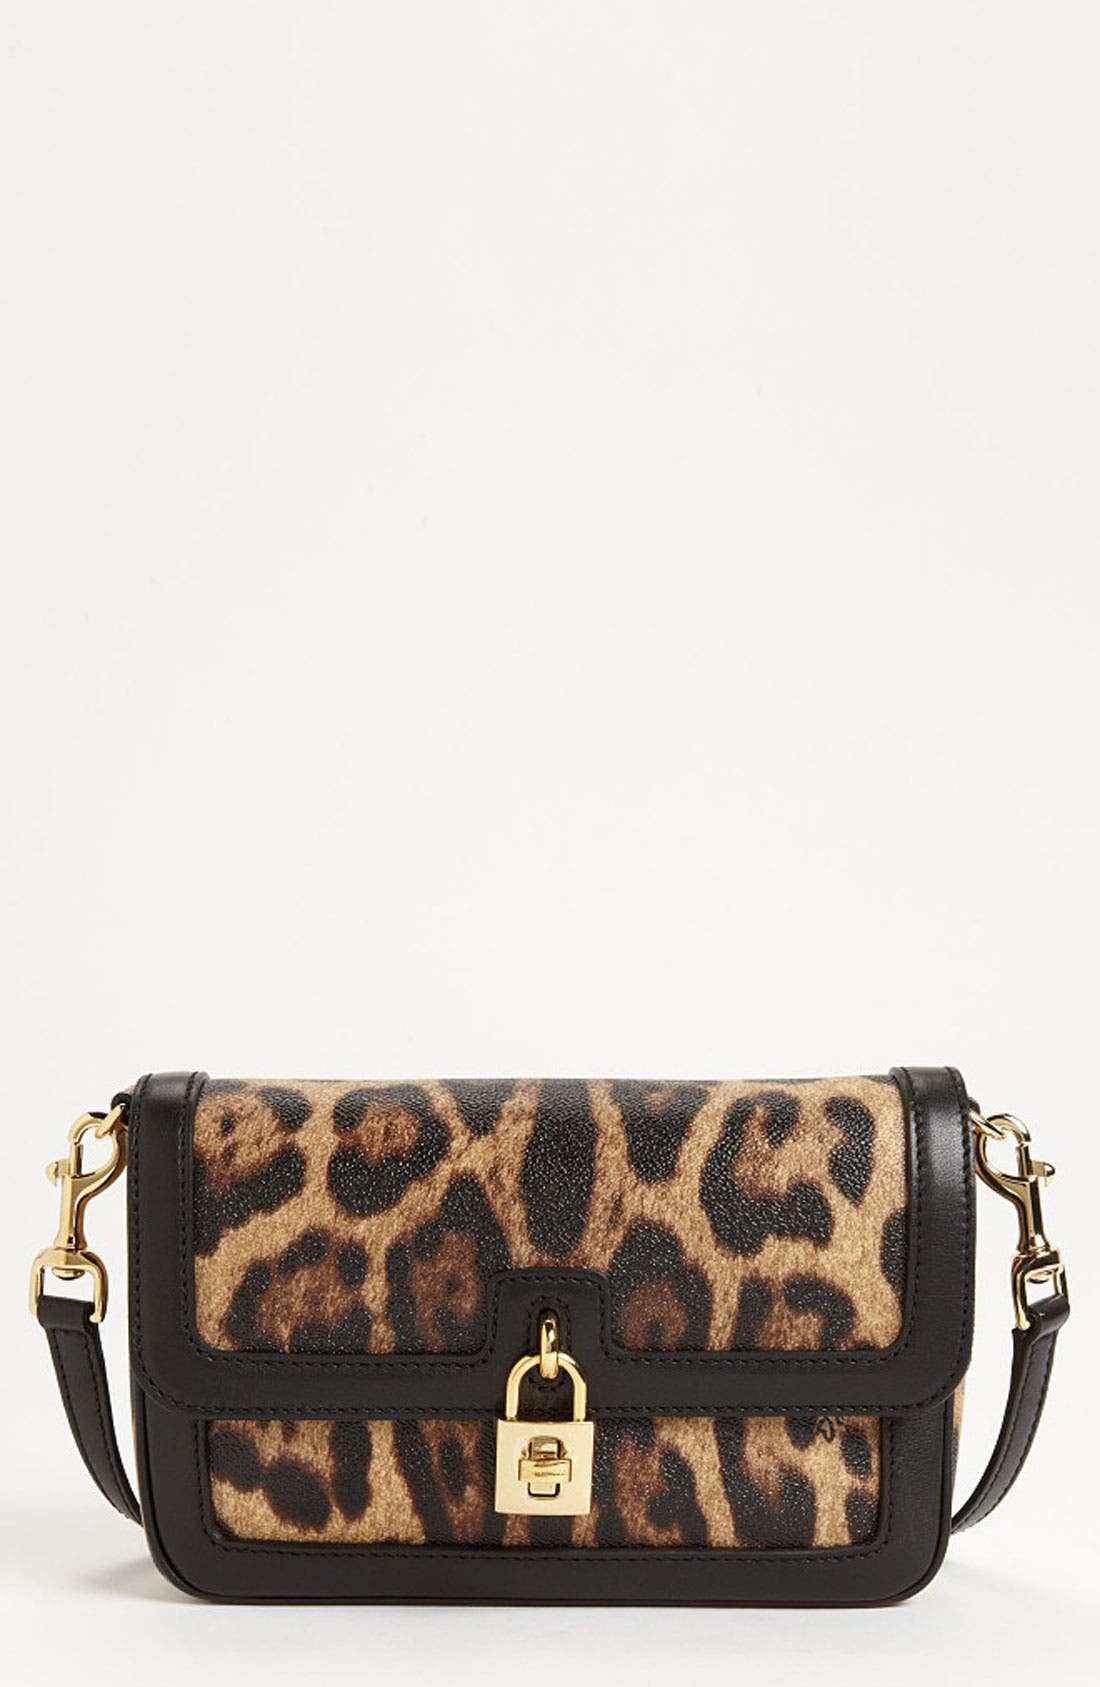 Alternate Image 1 Selected - Dolce&Gabbana 'Miss Dolce' Crossbody Bag